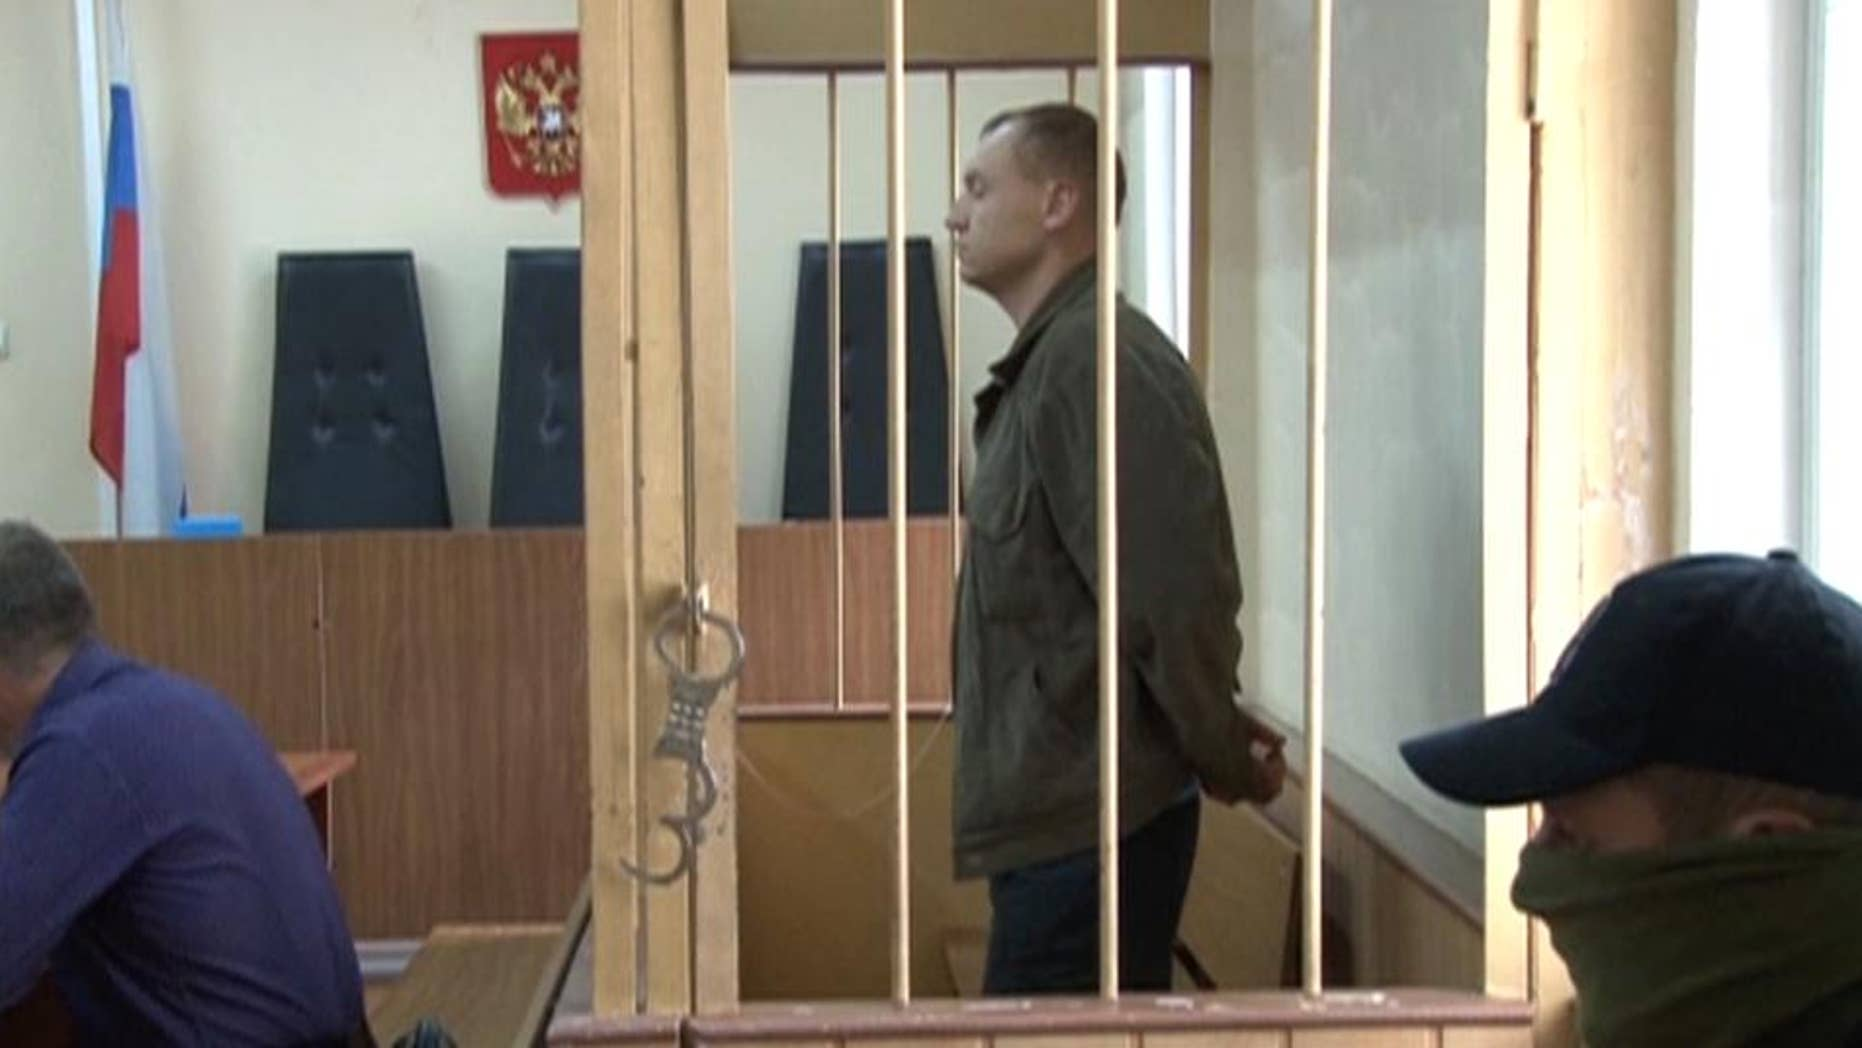 In this September 17, 2014 video grab made available by the APTN on Wednesday, Aug. 19, 2015 Eston Kohver of Estonia stands behind bars in Pskov, Russia. The regional court in the western city of Pskov on Wednesday, Aug. 19, 2015, found Kohver guilty of spying, arms smuggling and violating border regulations and ruled to send him to a high-security prison for 15 years. (AP Photo/APTN) TV OUT RUSSIA OUT